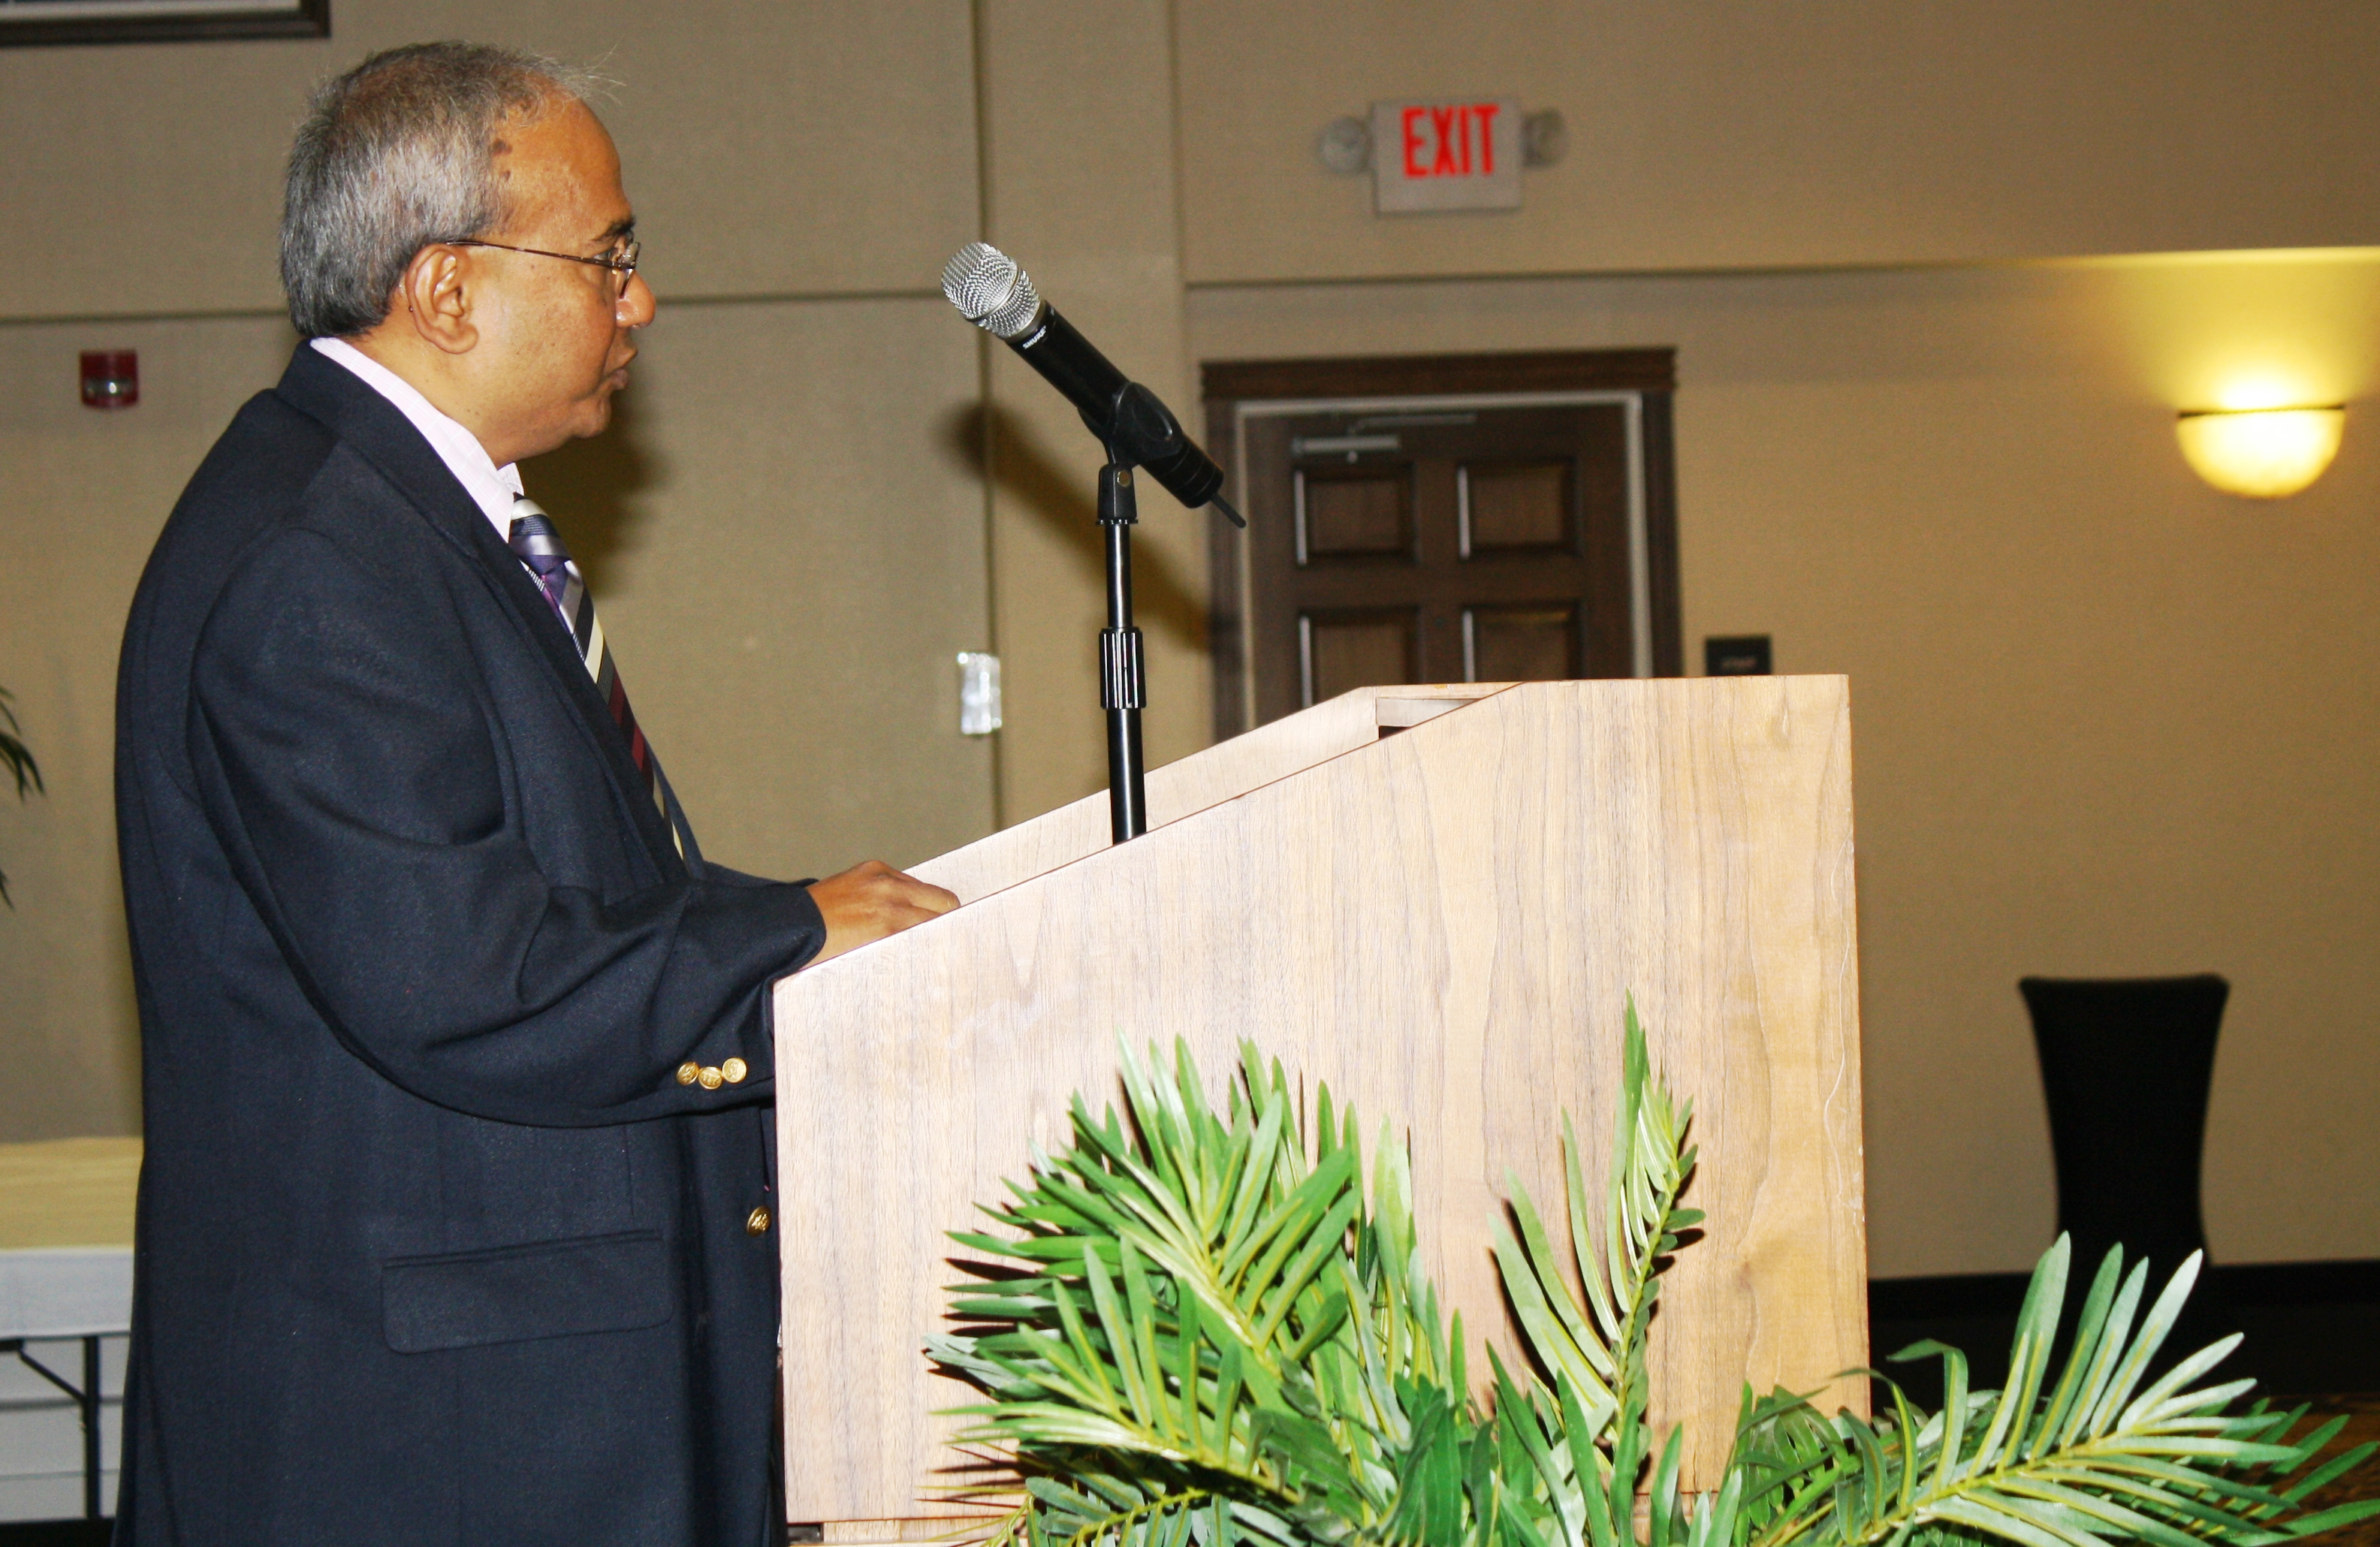 Manohar Kulkarni, former ISTC Director, speaks to banquet